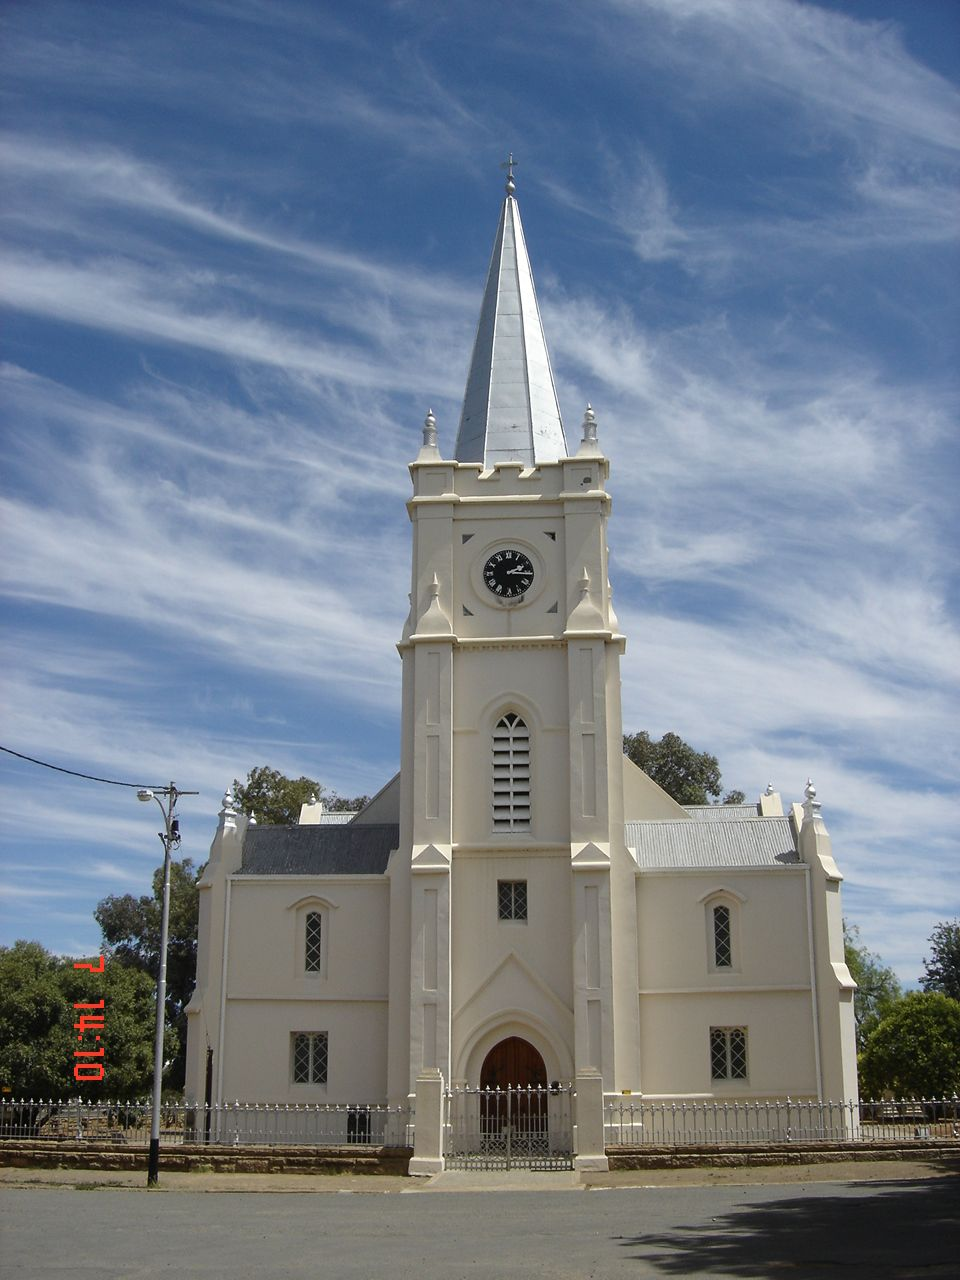 Colesberg South Africa  City pictures : Colesberg | Road trip through South Africa | Pinterest